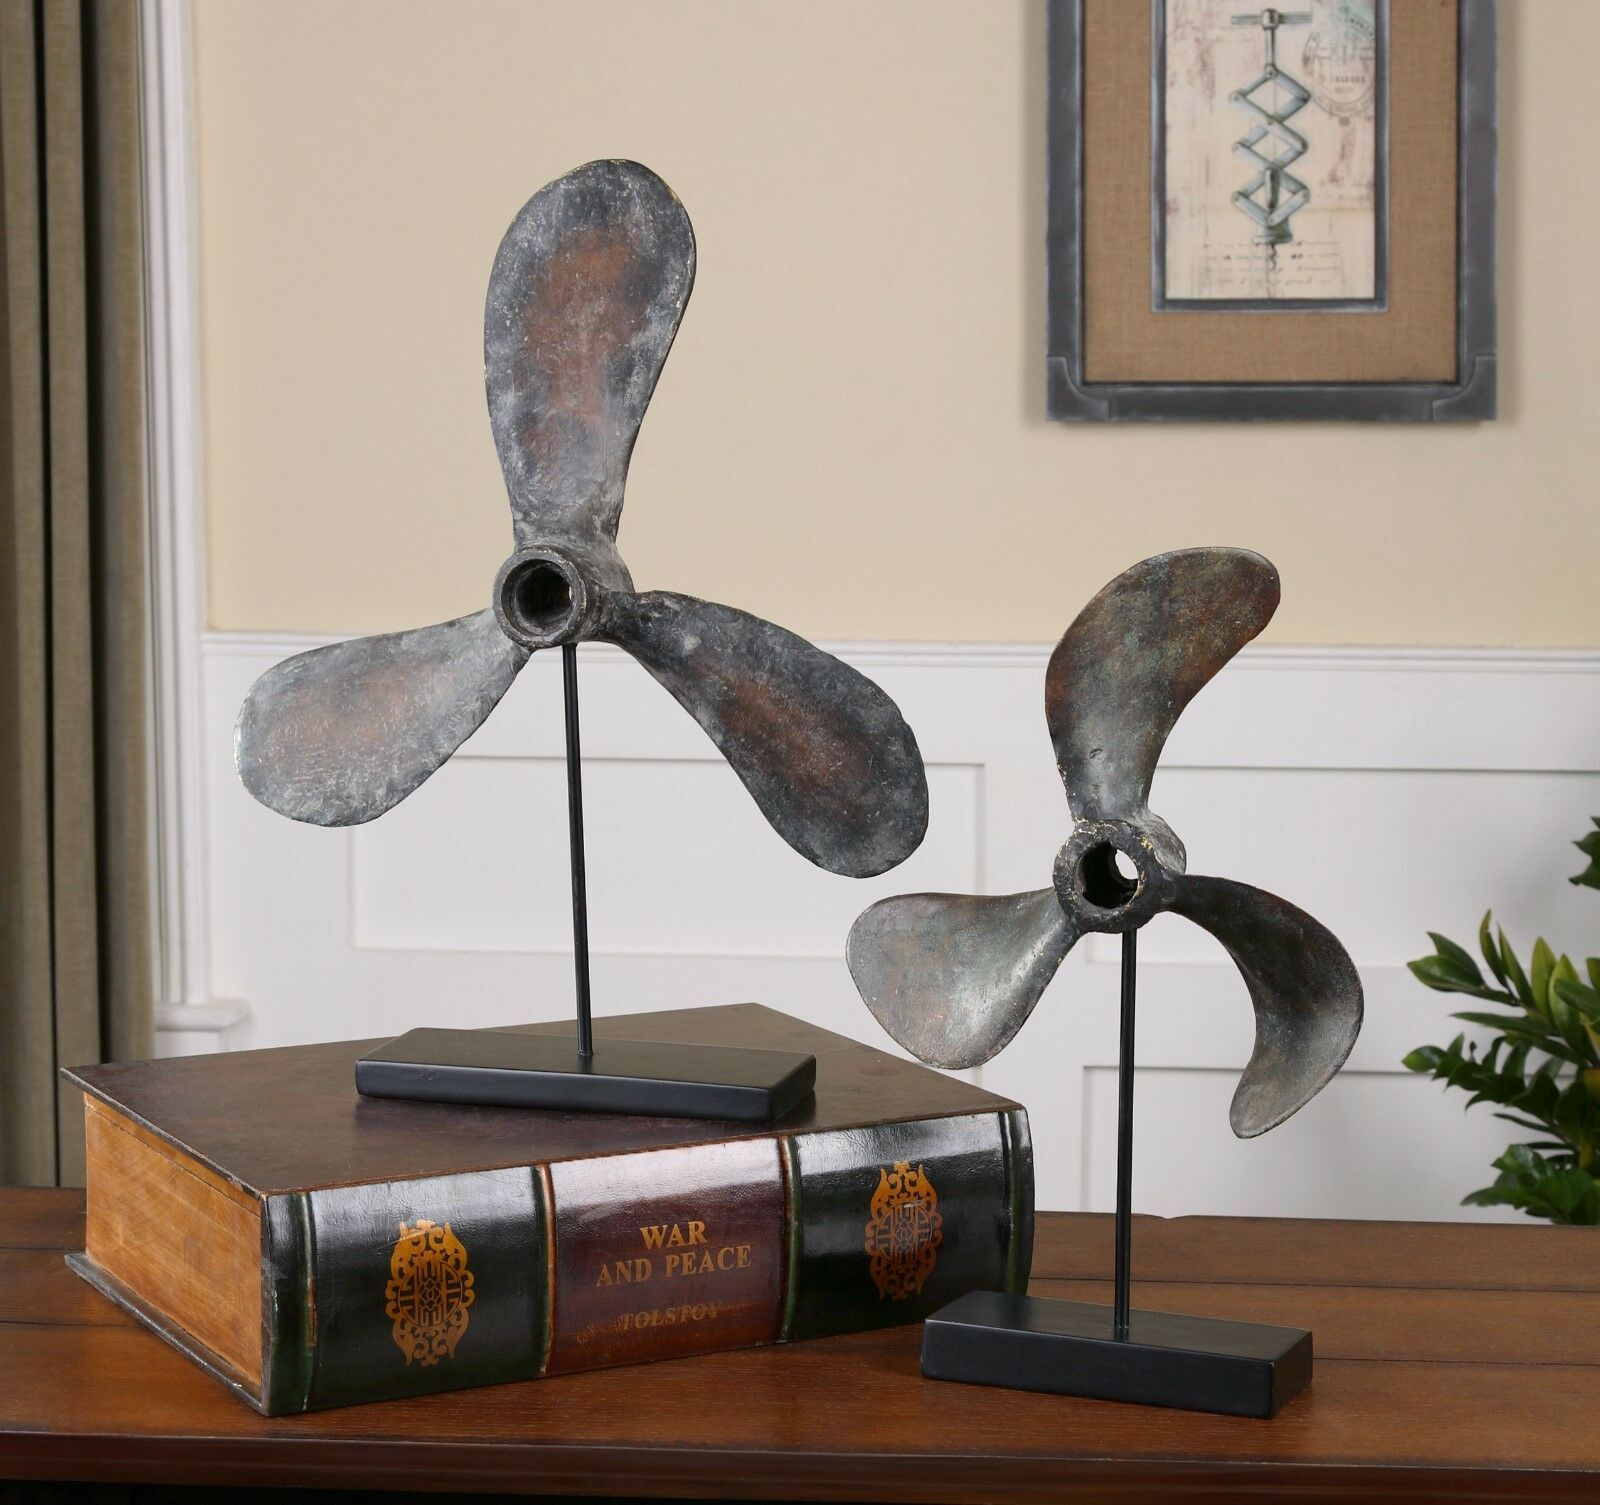 PAIR COASTAL BEACH BOAT PROPELLERS PROPS & STANDS STATUE SCULPTURES SCULPTURES SCULPTURES NAUTICAL 6d92ec